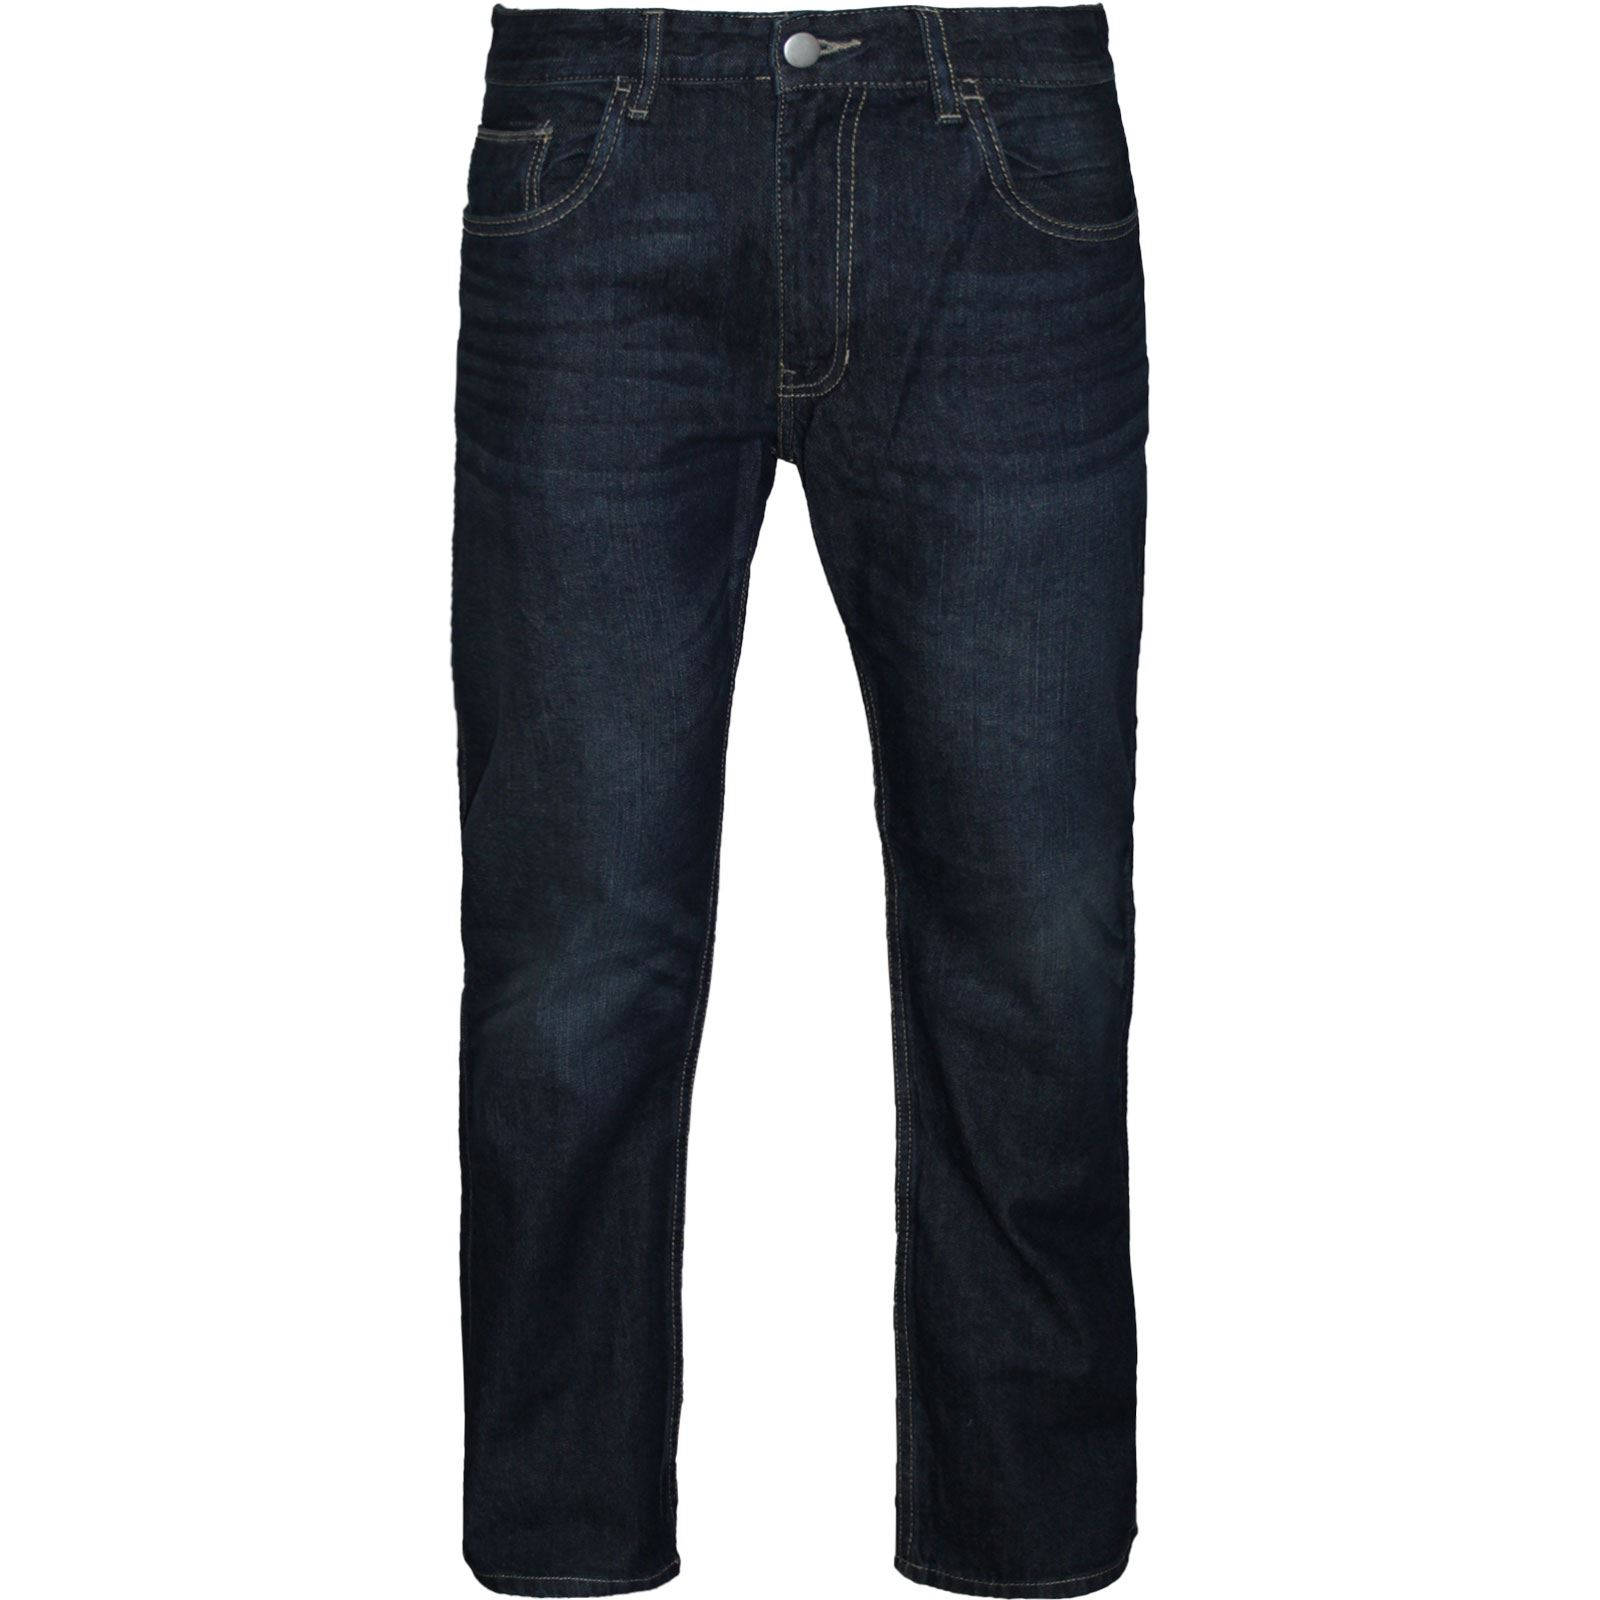 wide leg bootcut jeans - Jean Yu Beauty